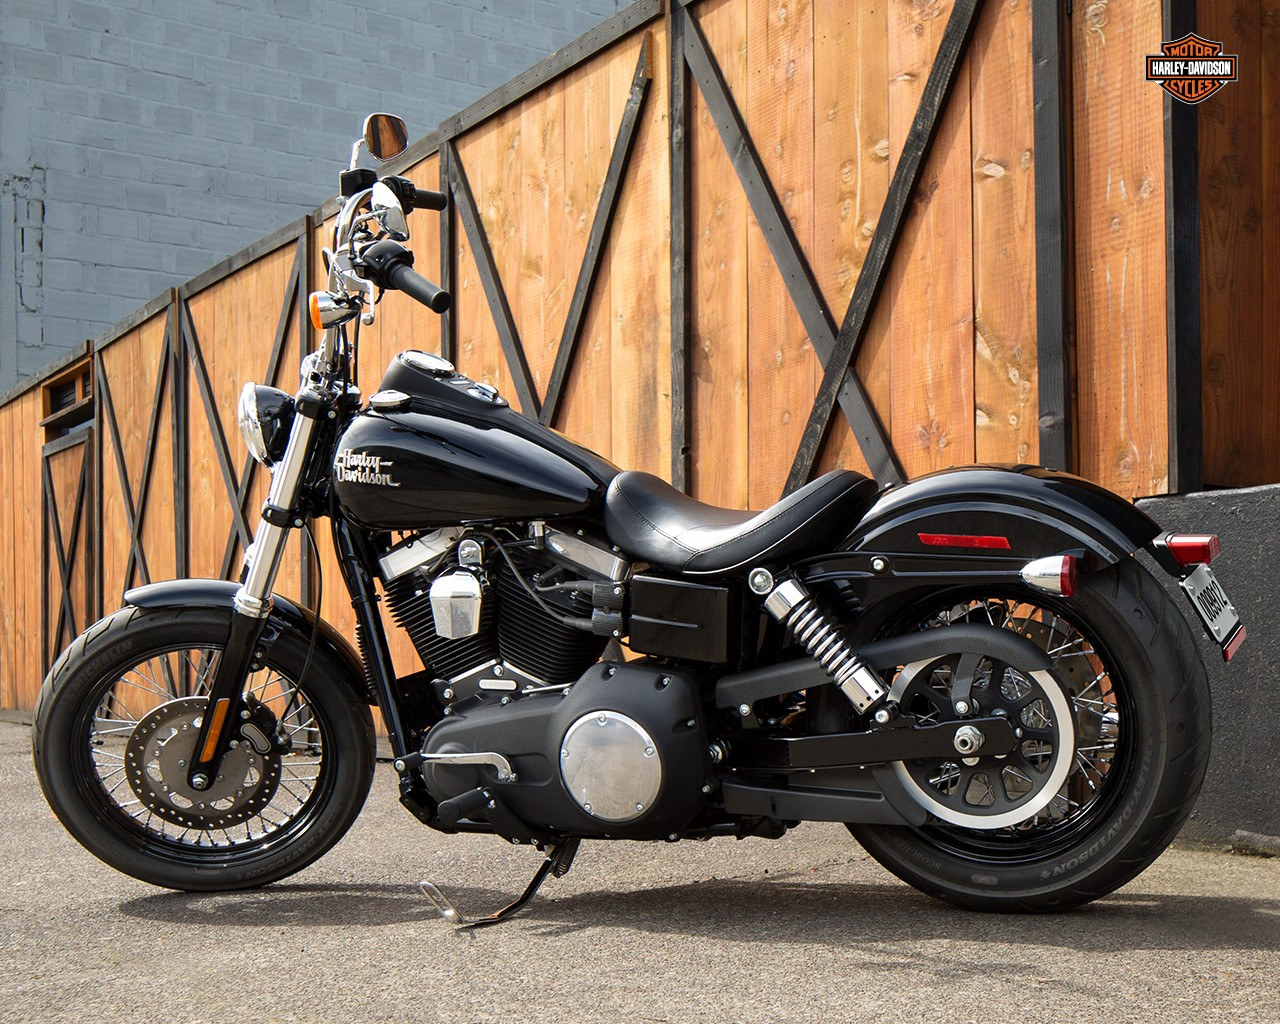 2015 Harley-Davidson Dyna Street Bob Shows Up - autoevolution